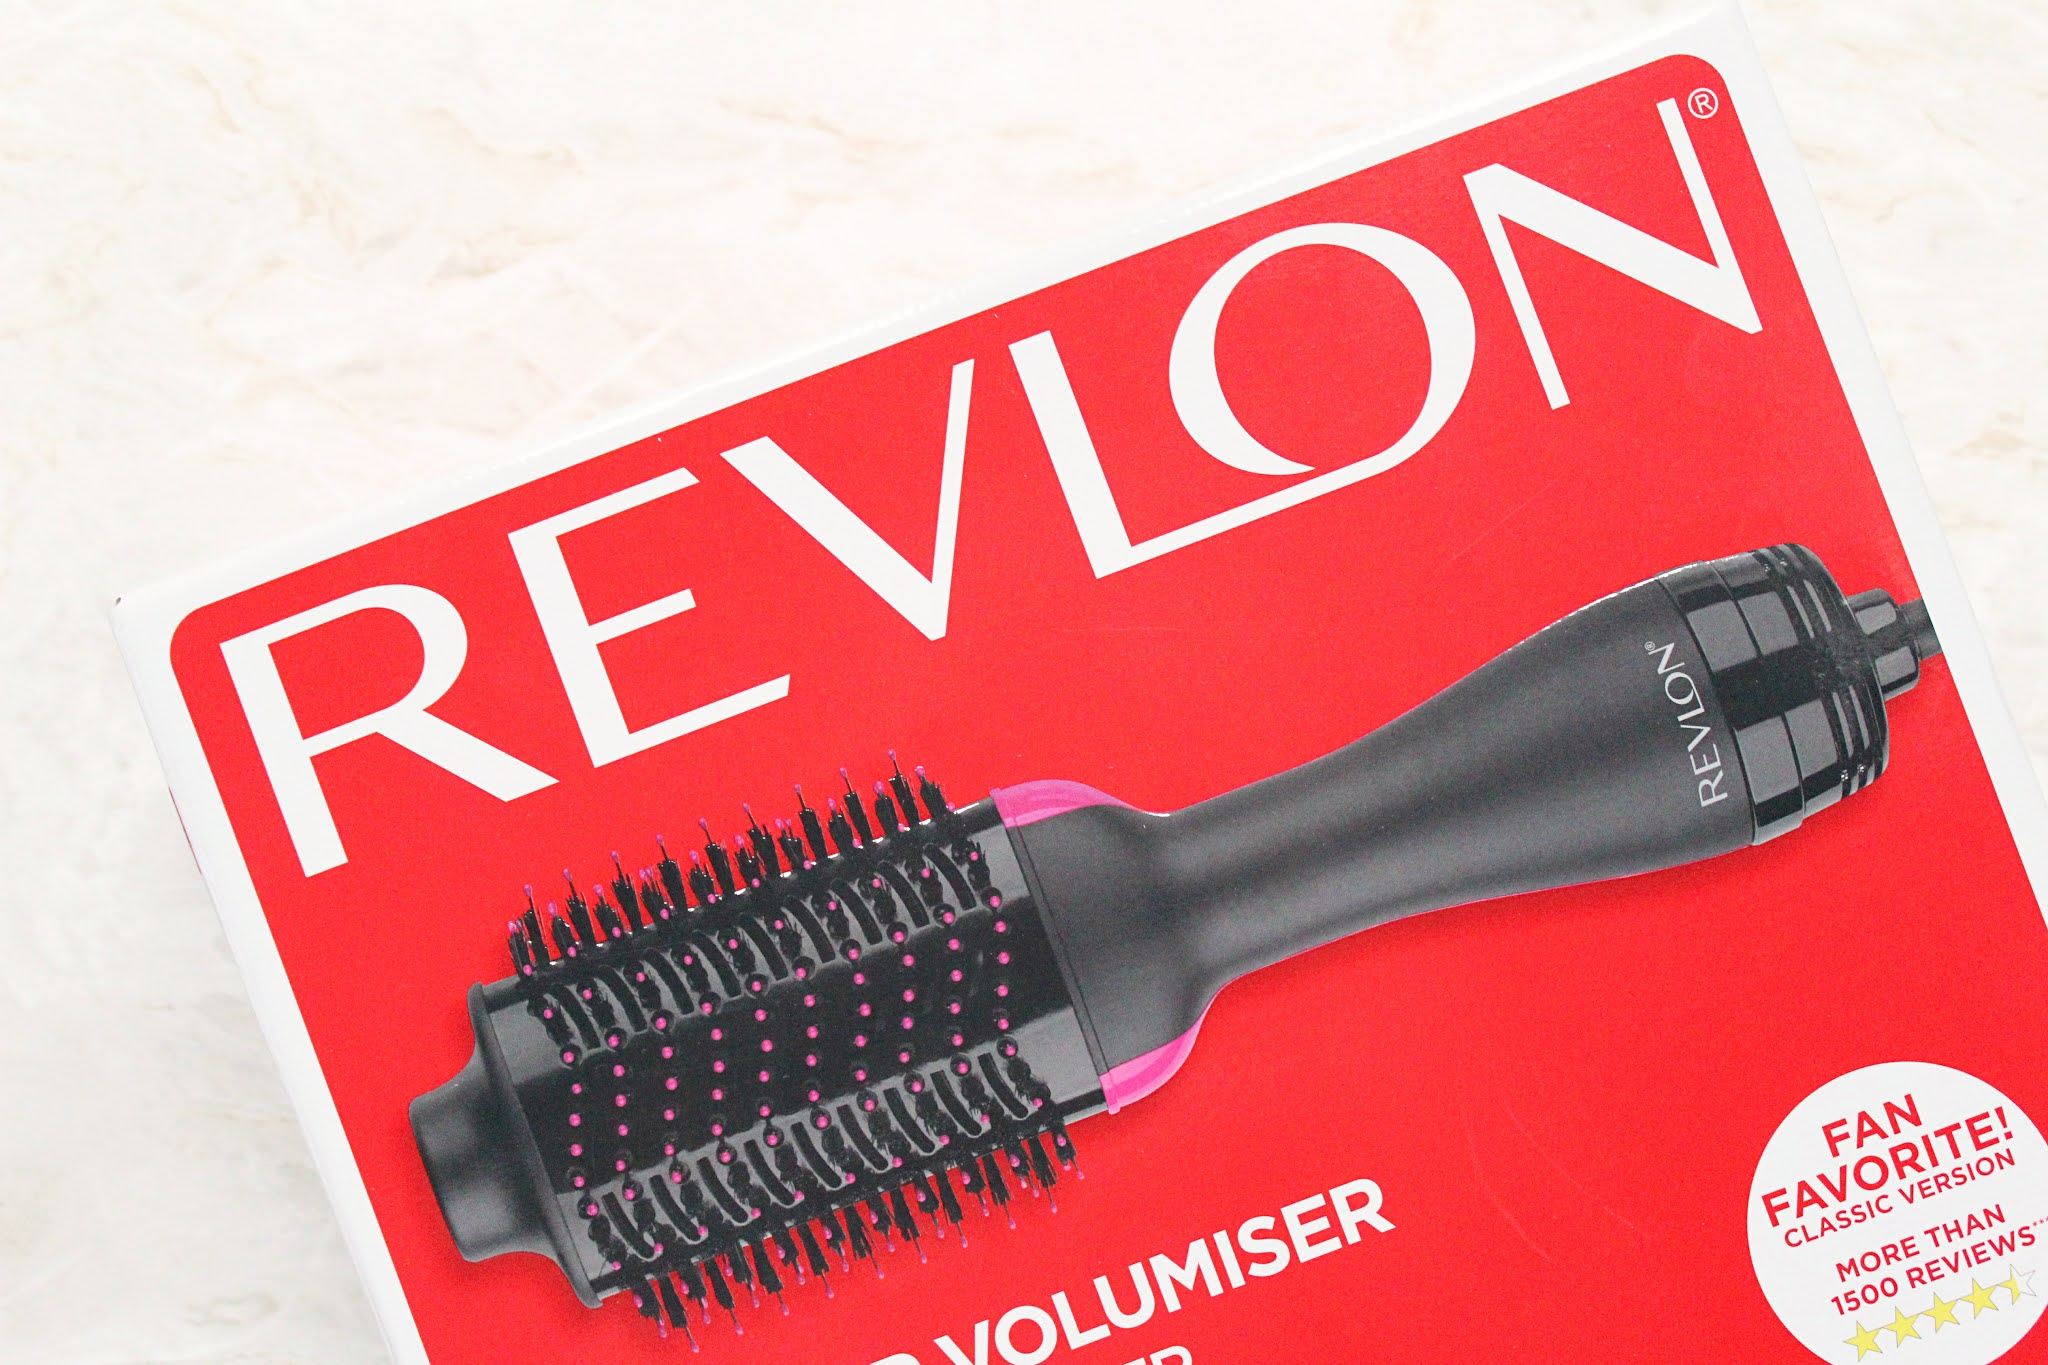 Revlon Blow Dry Brush Review